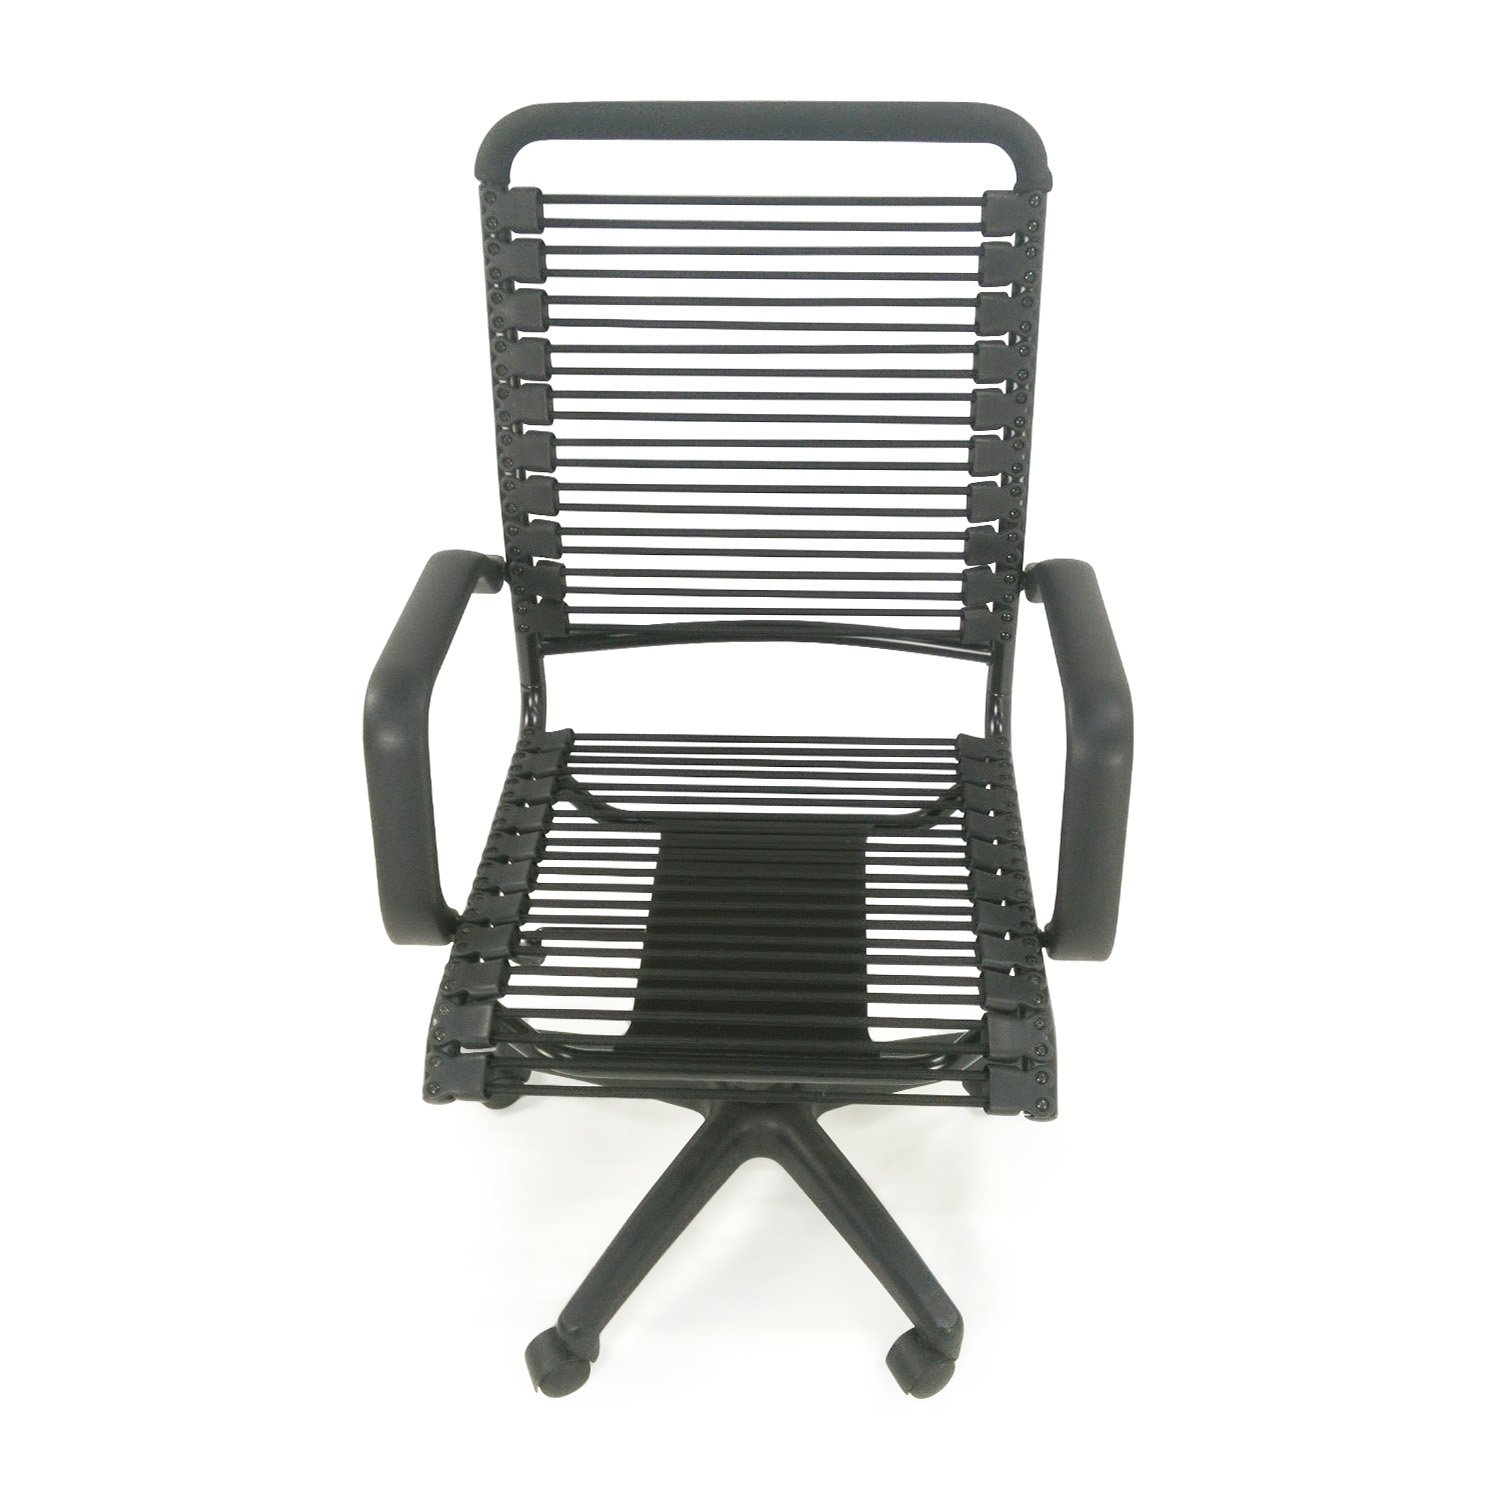 Euro Style Euro Style Bradley Bungie Office Chair for sale